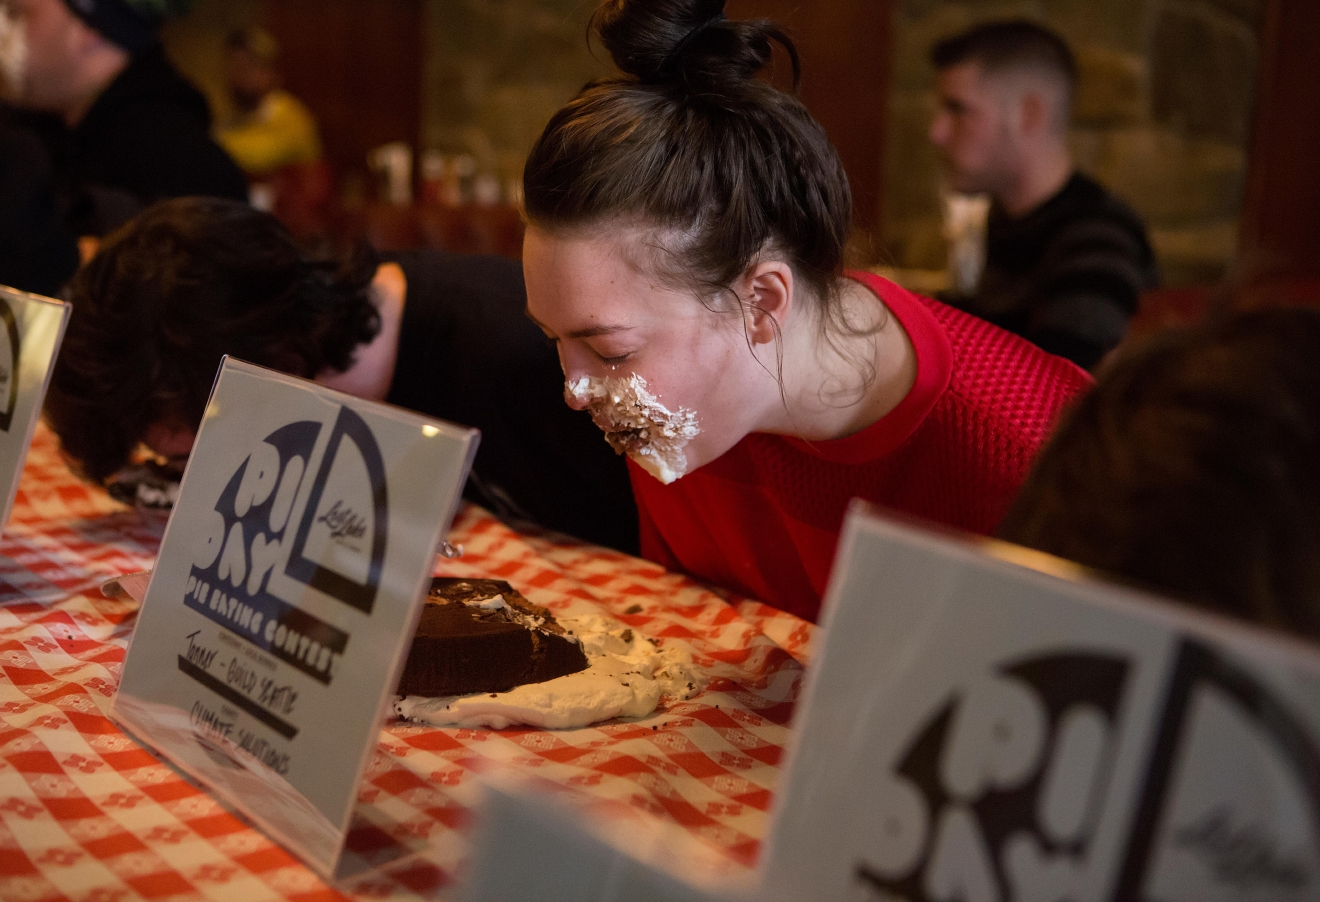 A participant is covered in whip cream as she races to eat her chocolate pie during the second annual Pi Day Pie Eating Contest at Lost Lake Cafe. (Sy Bean / Seattle Refined)